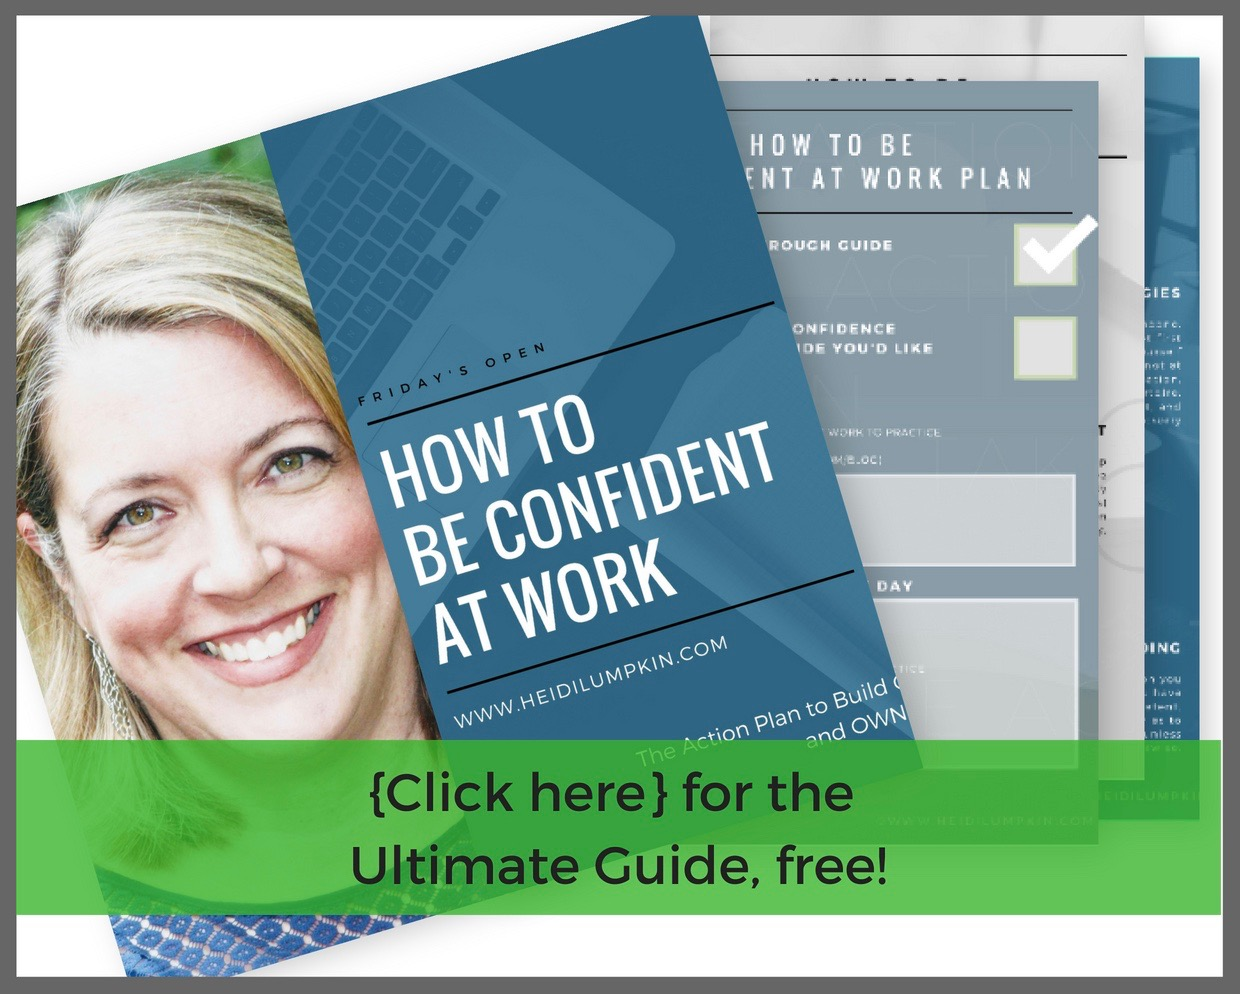 How to be confident at work guide